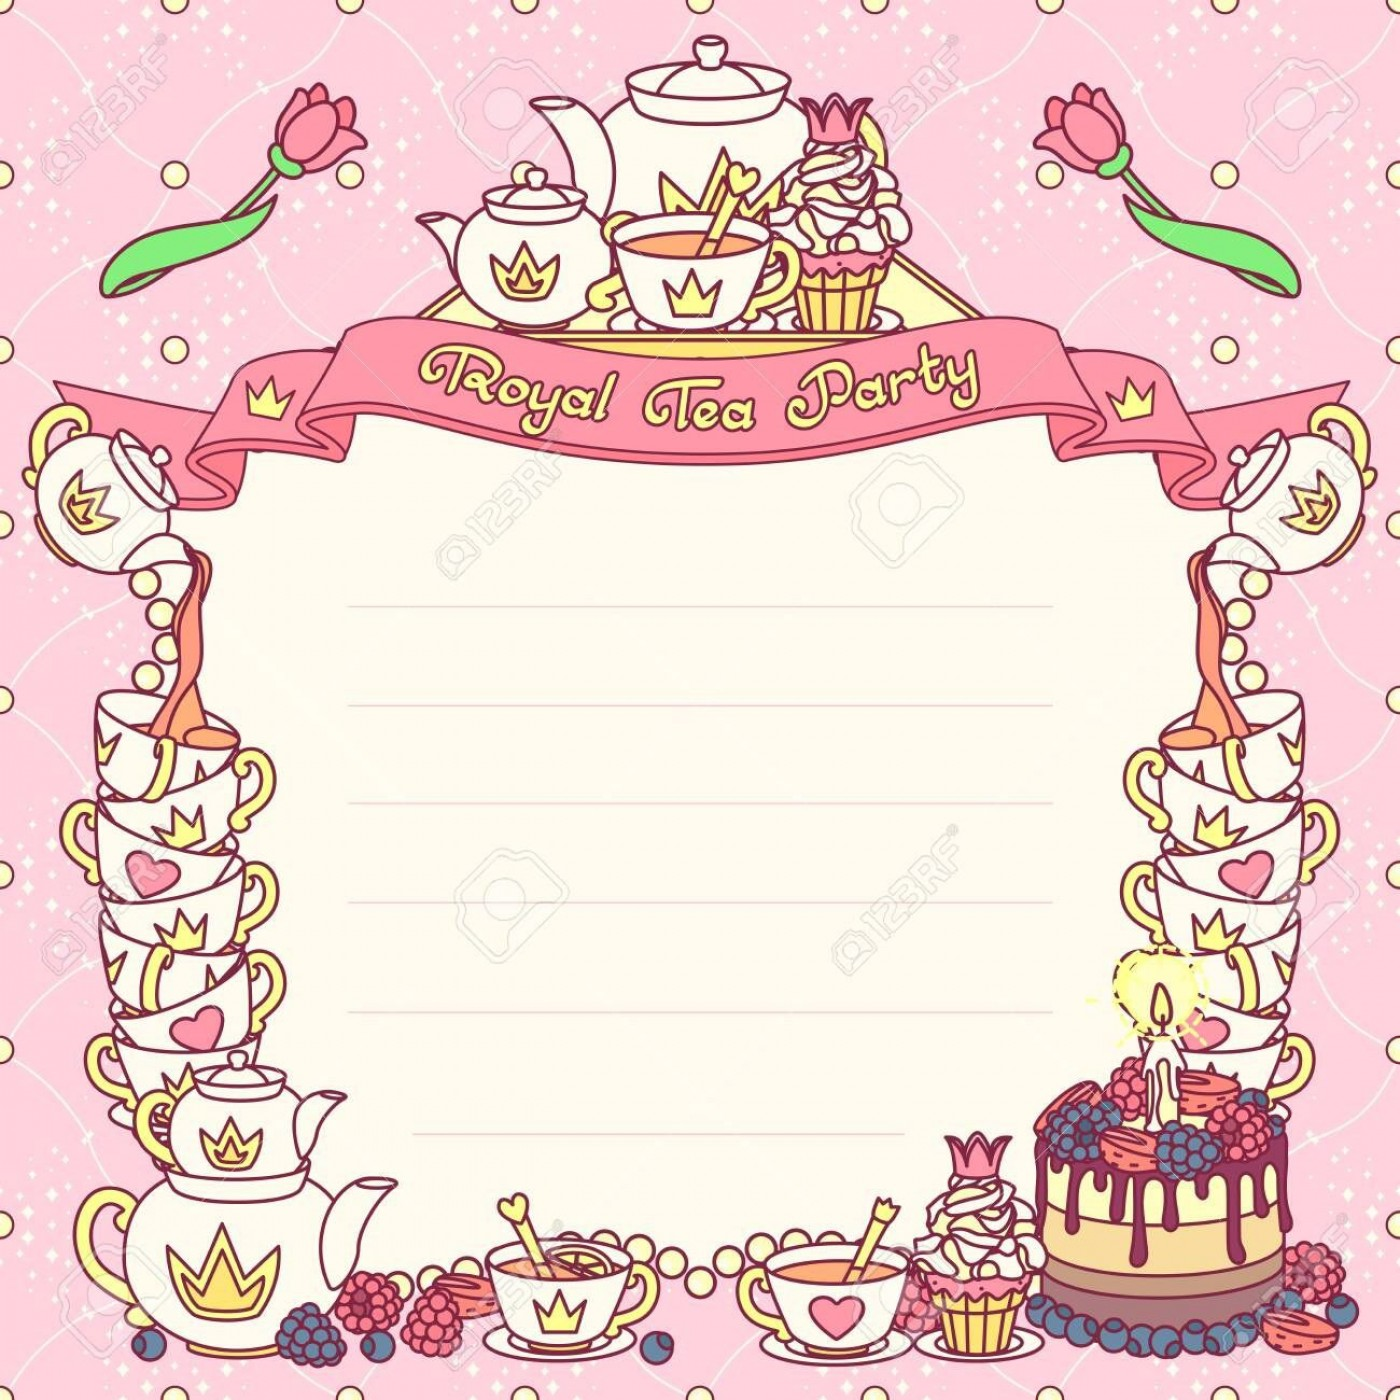 006 Sensational Tea Party Invitation Template Picture  Vintage Free Editable Card Pdf1400